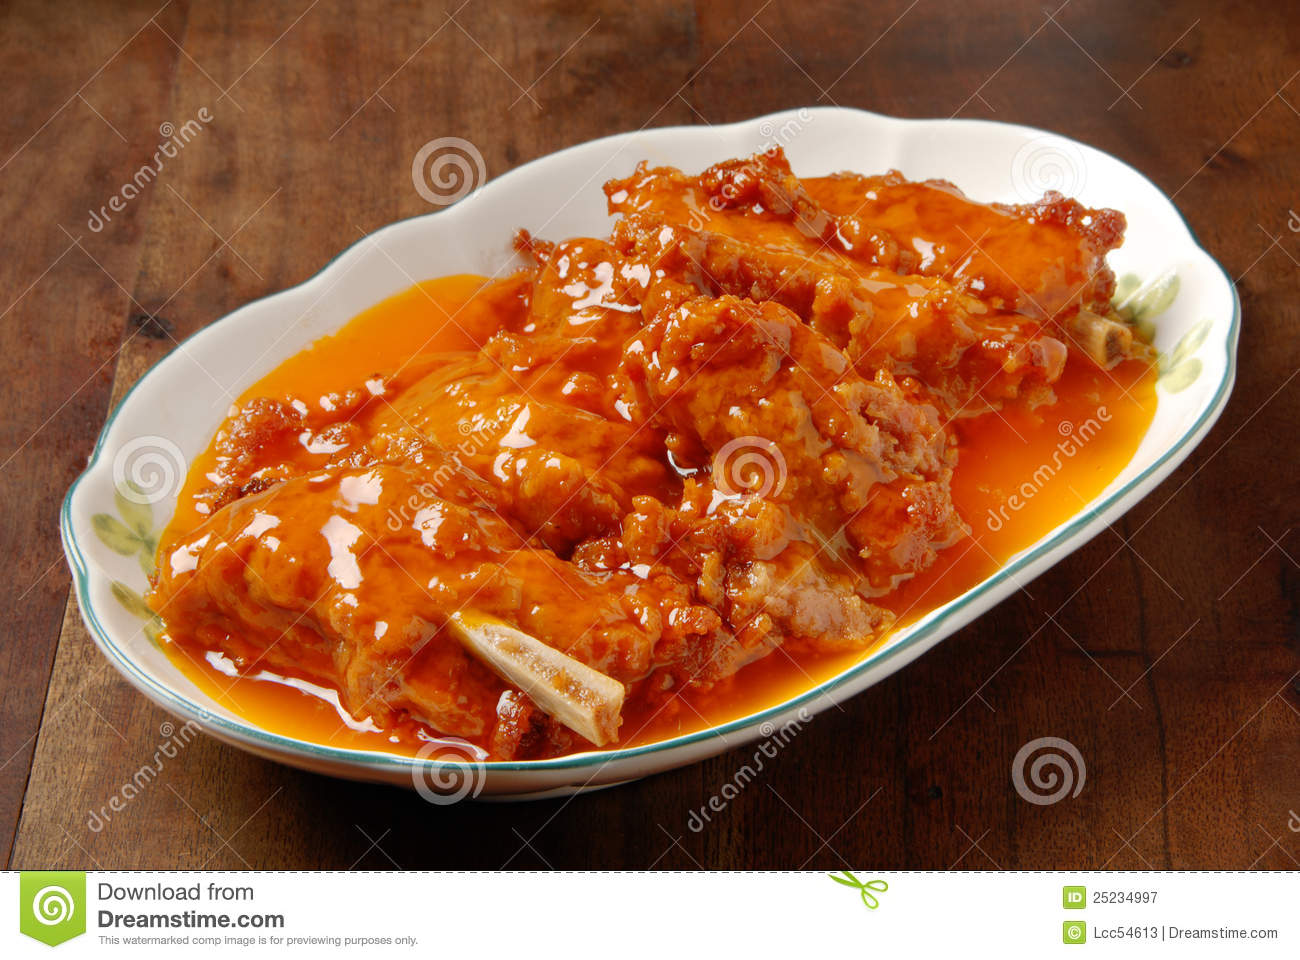 Pork Ribs With Orange Sauce Royalty Free Stock Photography - Image ...